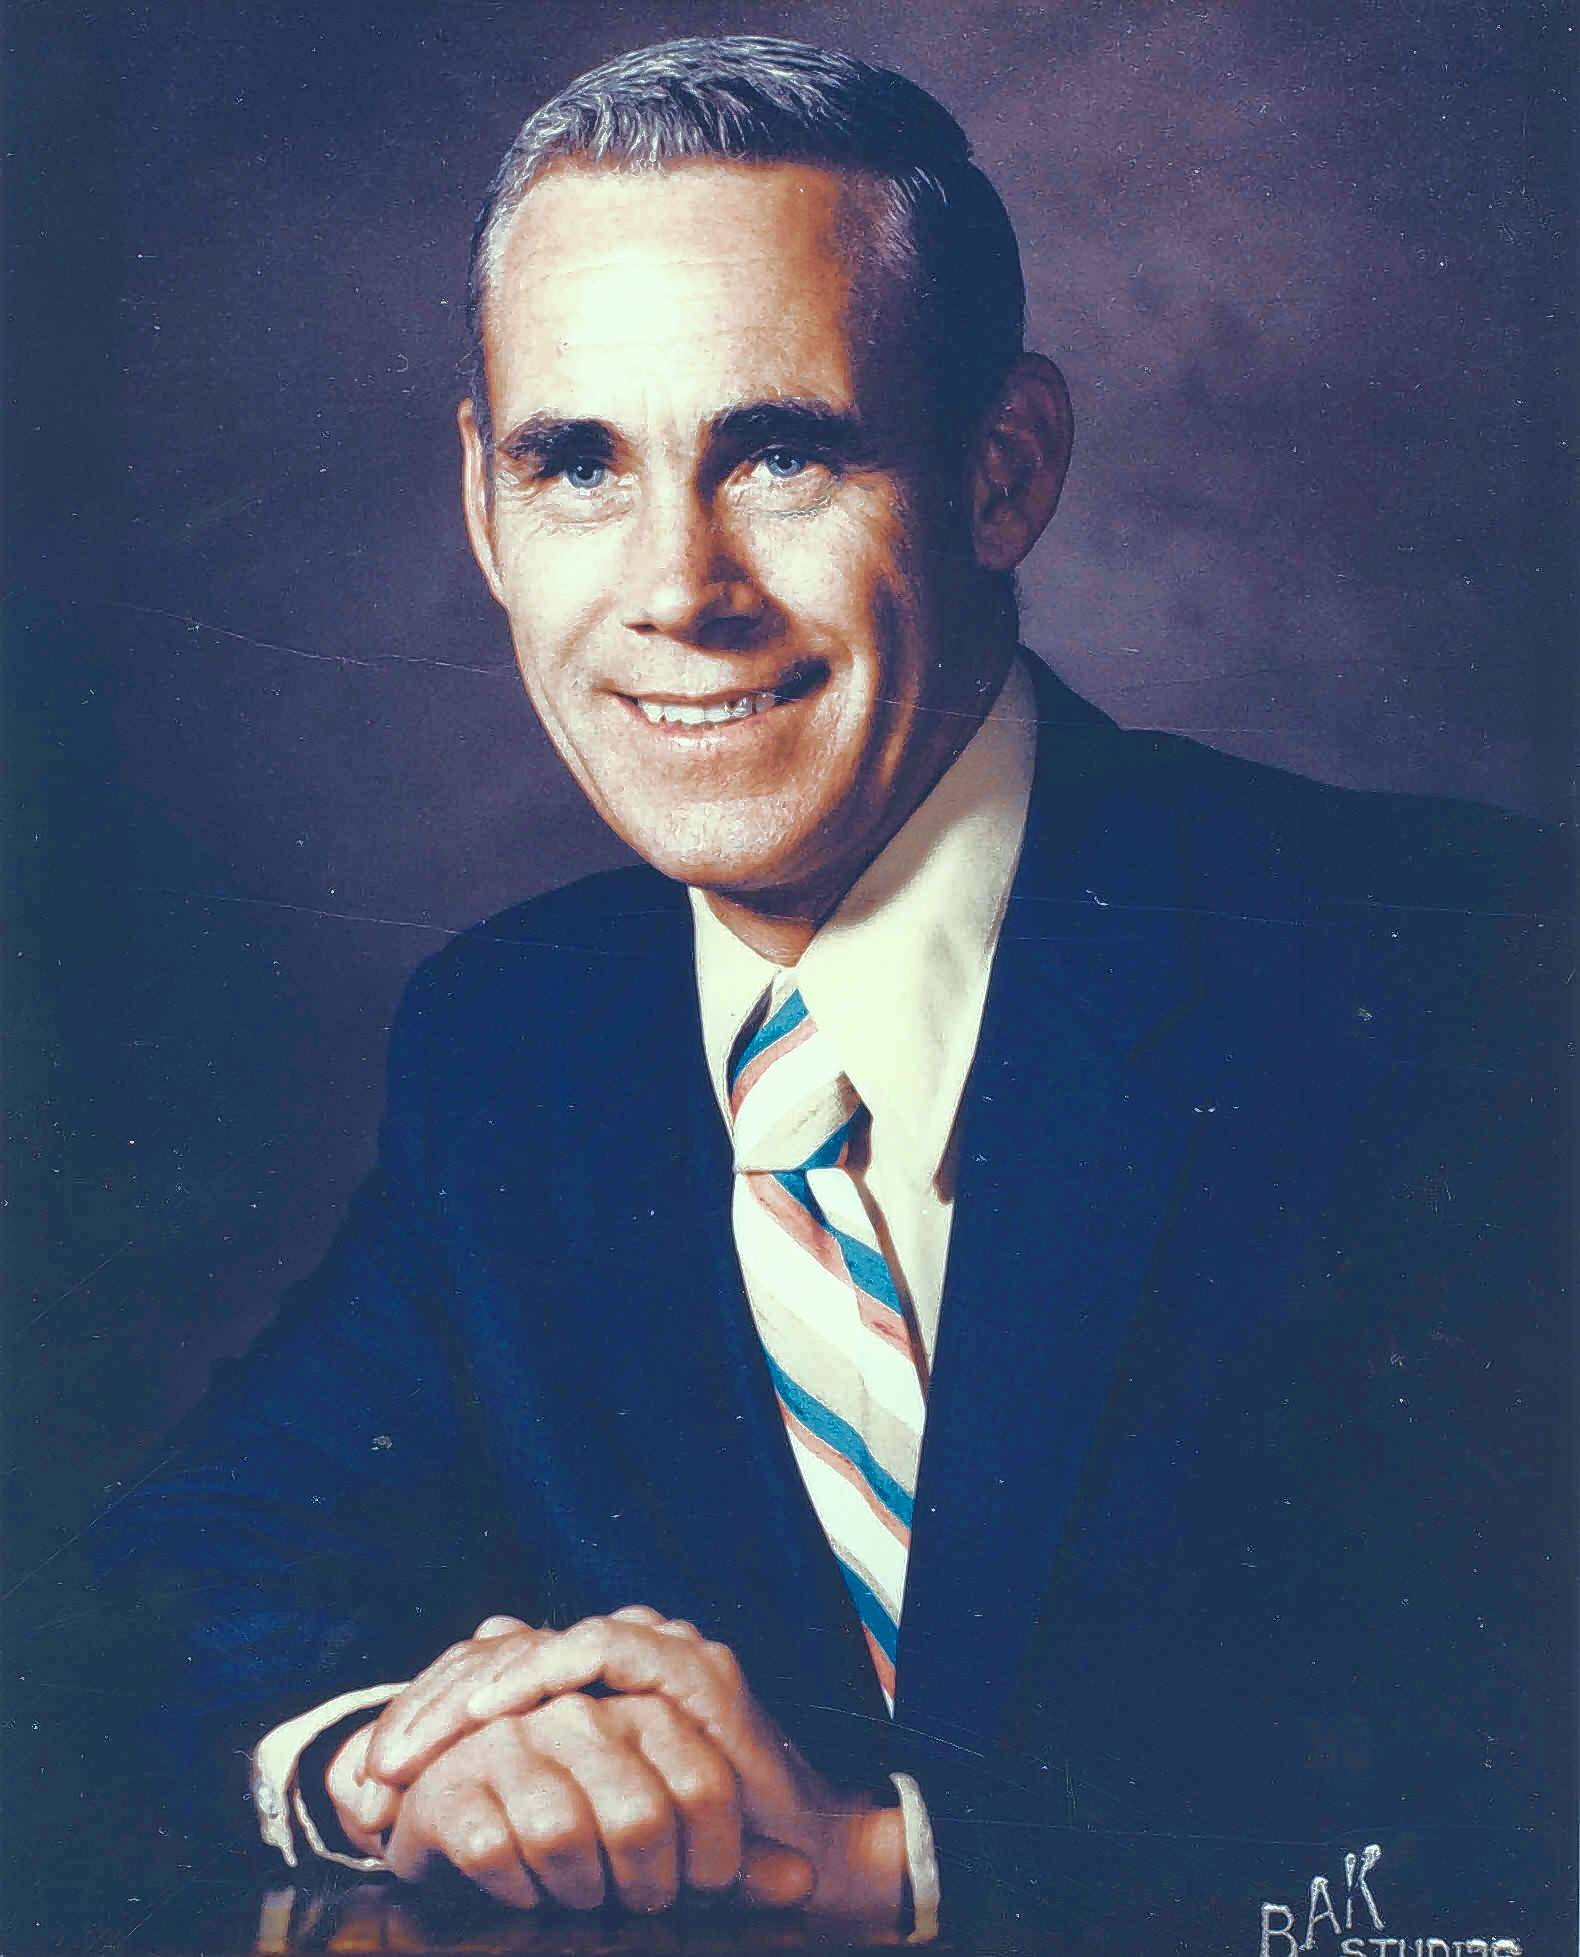 Robert Teichert served two terms as mayor of Mount Prospect, from 1969 to 1977.